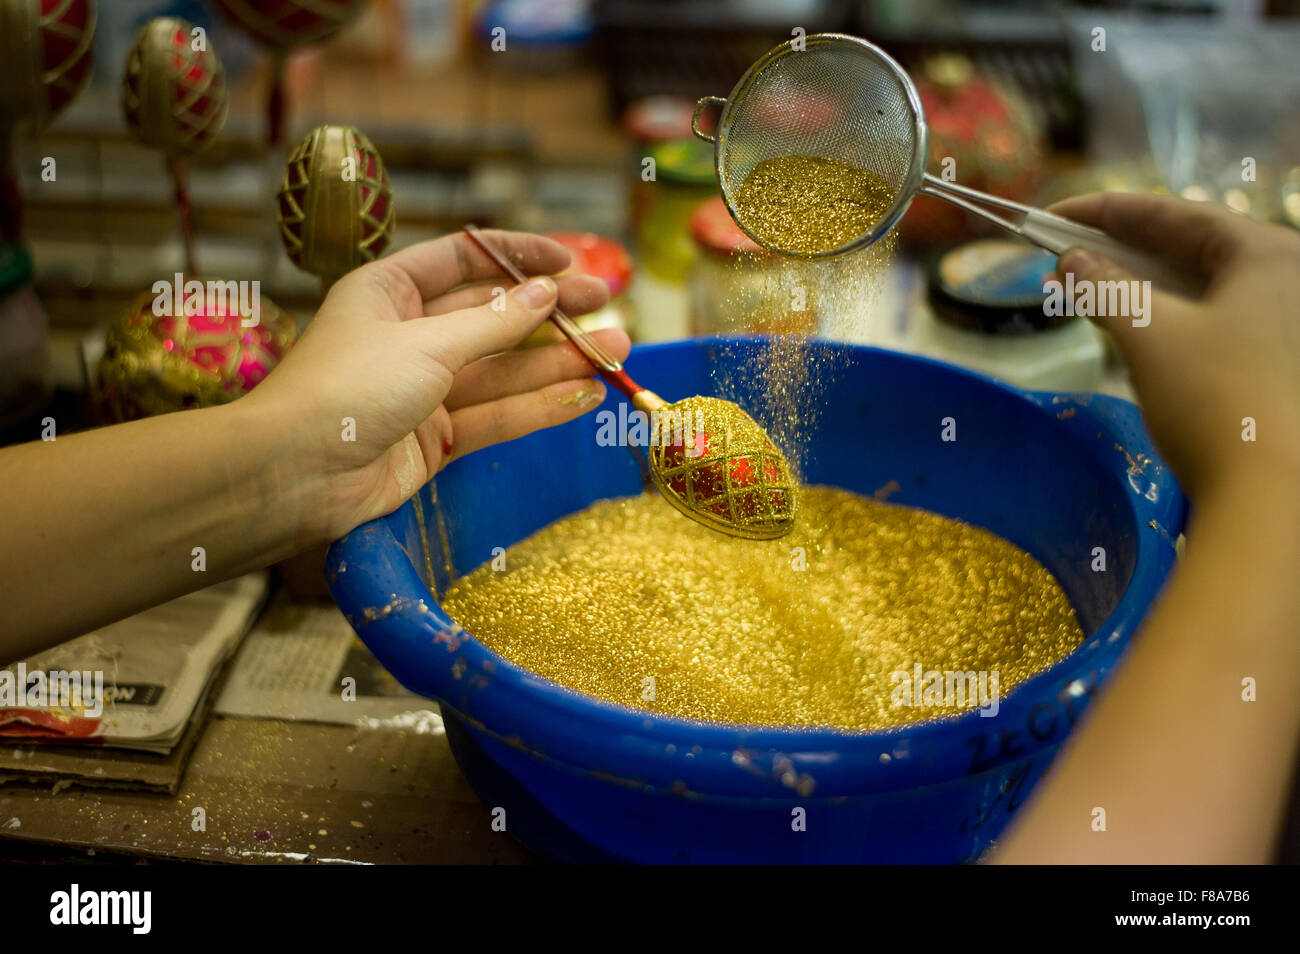 Piotrkow Trybunalski, Poland. 7th December, 2015. Worker decorates Christmas ball with golden glitter  at 'Szkło - Stock Image